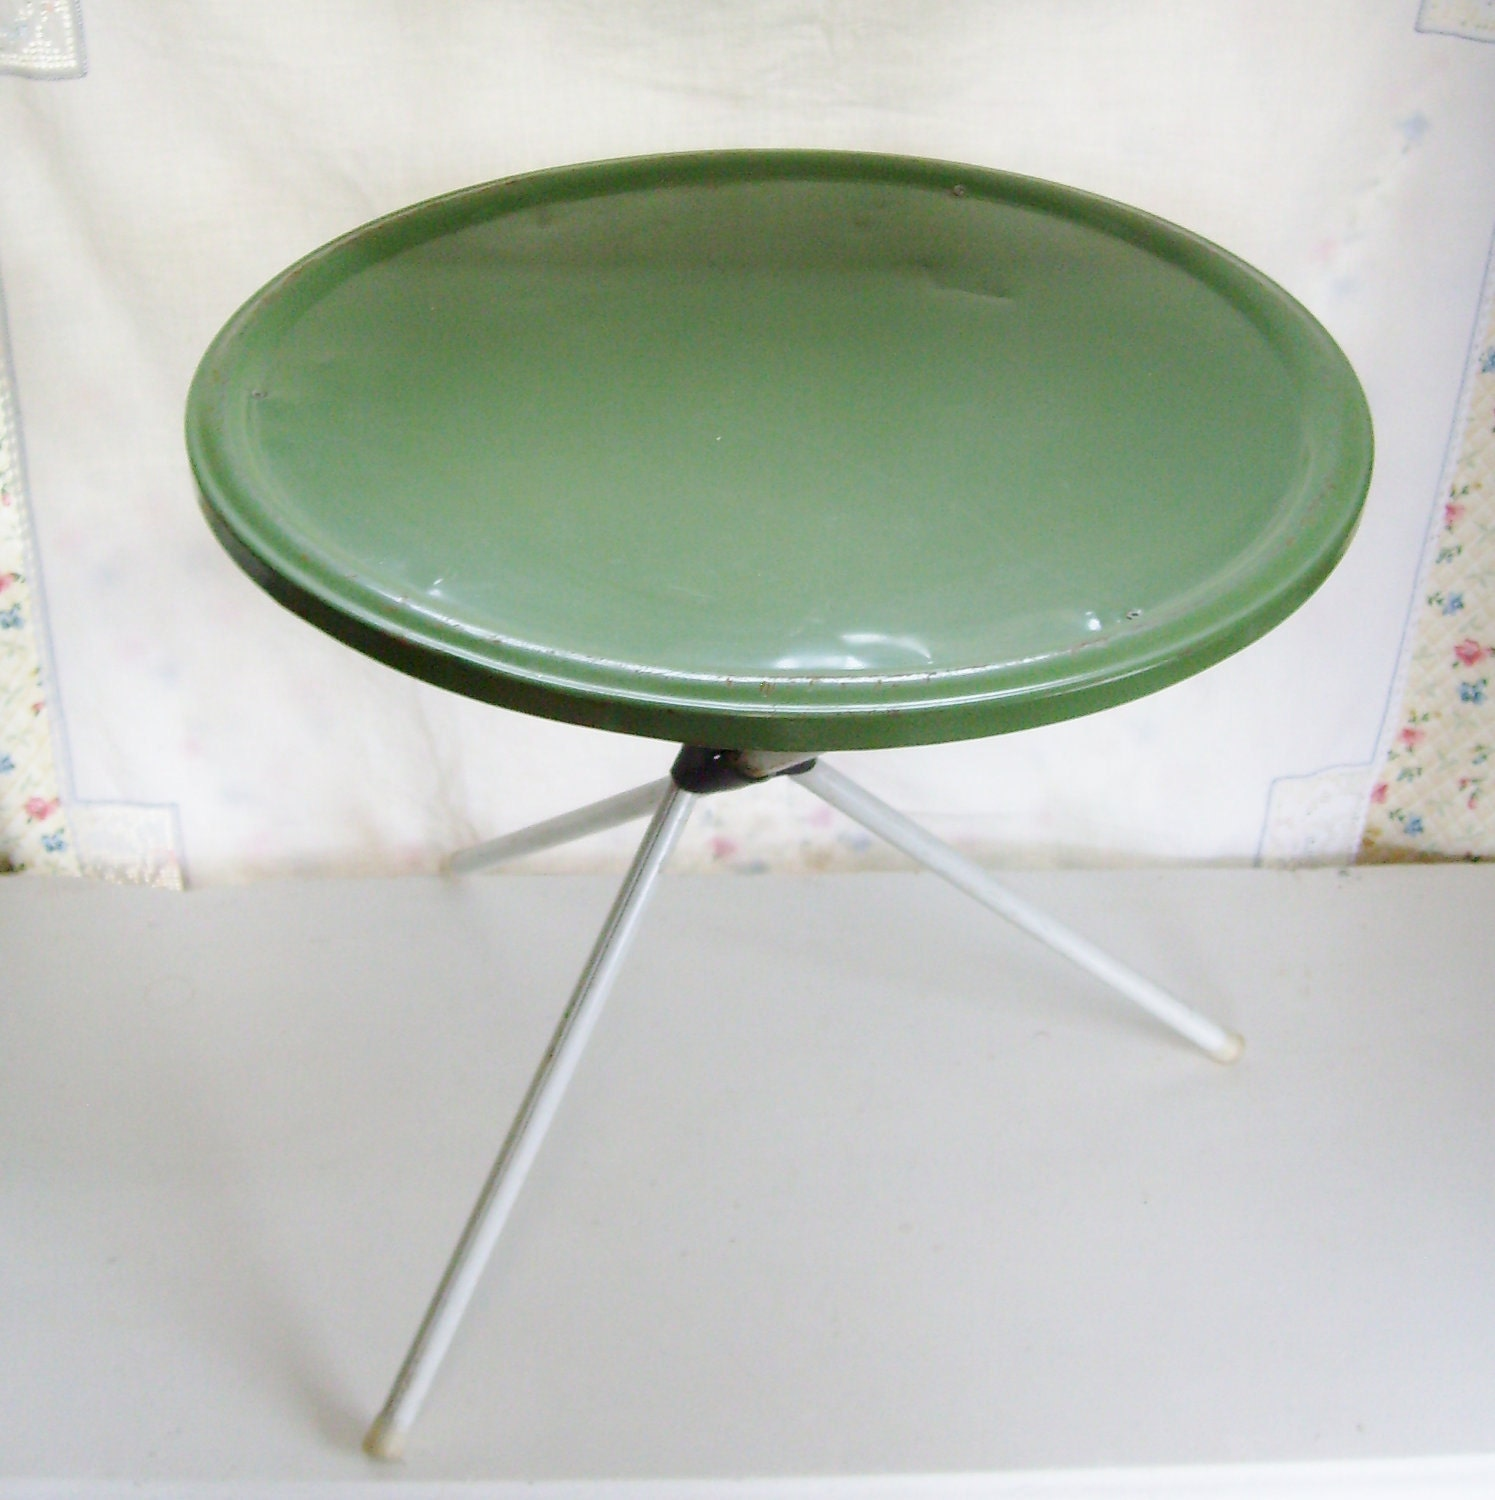 Vintage metal table patio camp or side folding olive green